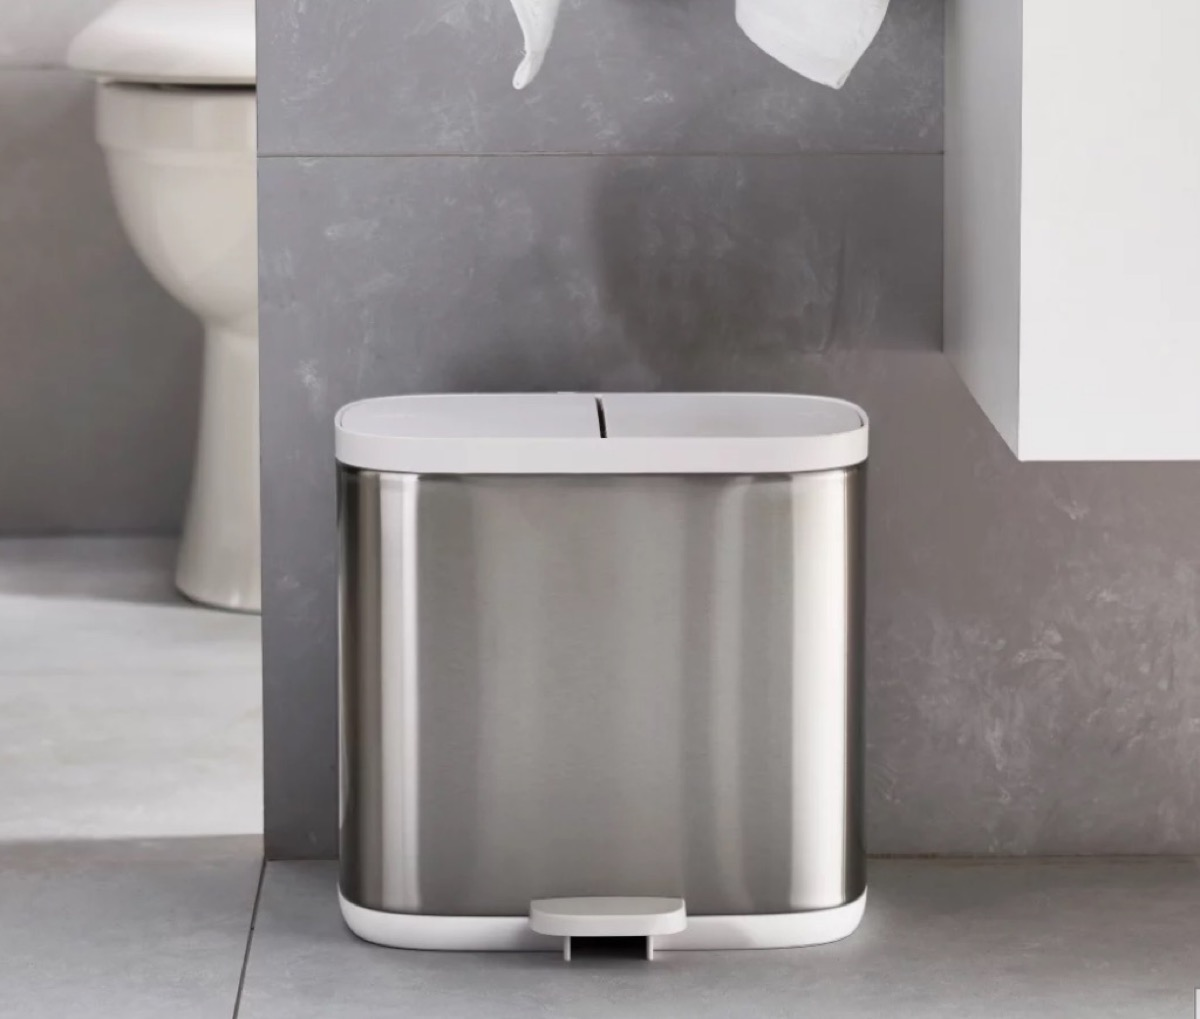 silver trash can with white top in a modern bathroom, bathroom accessories